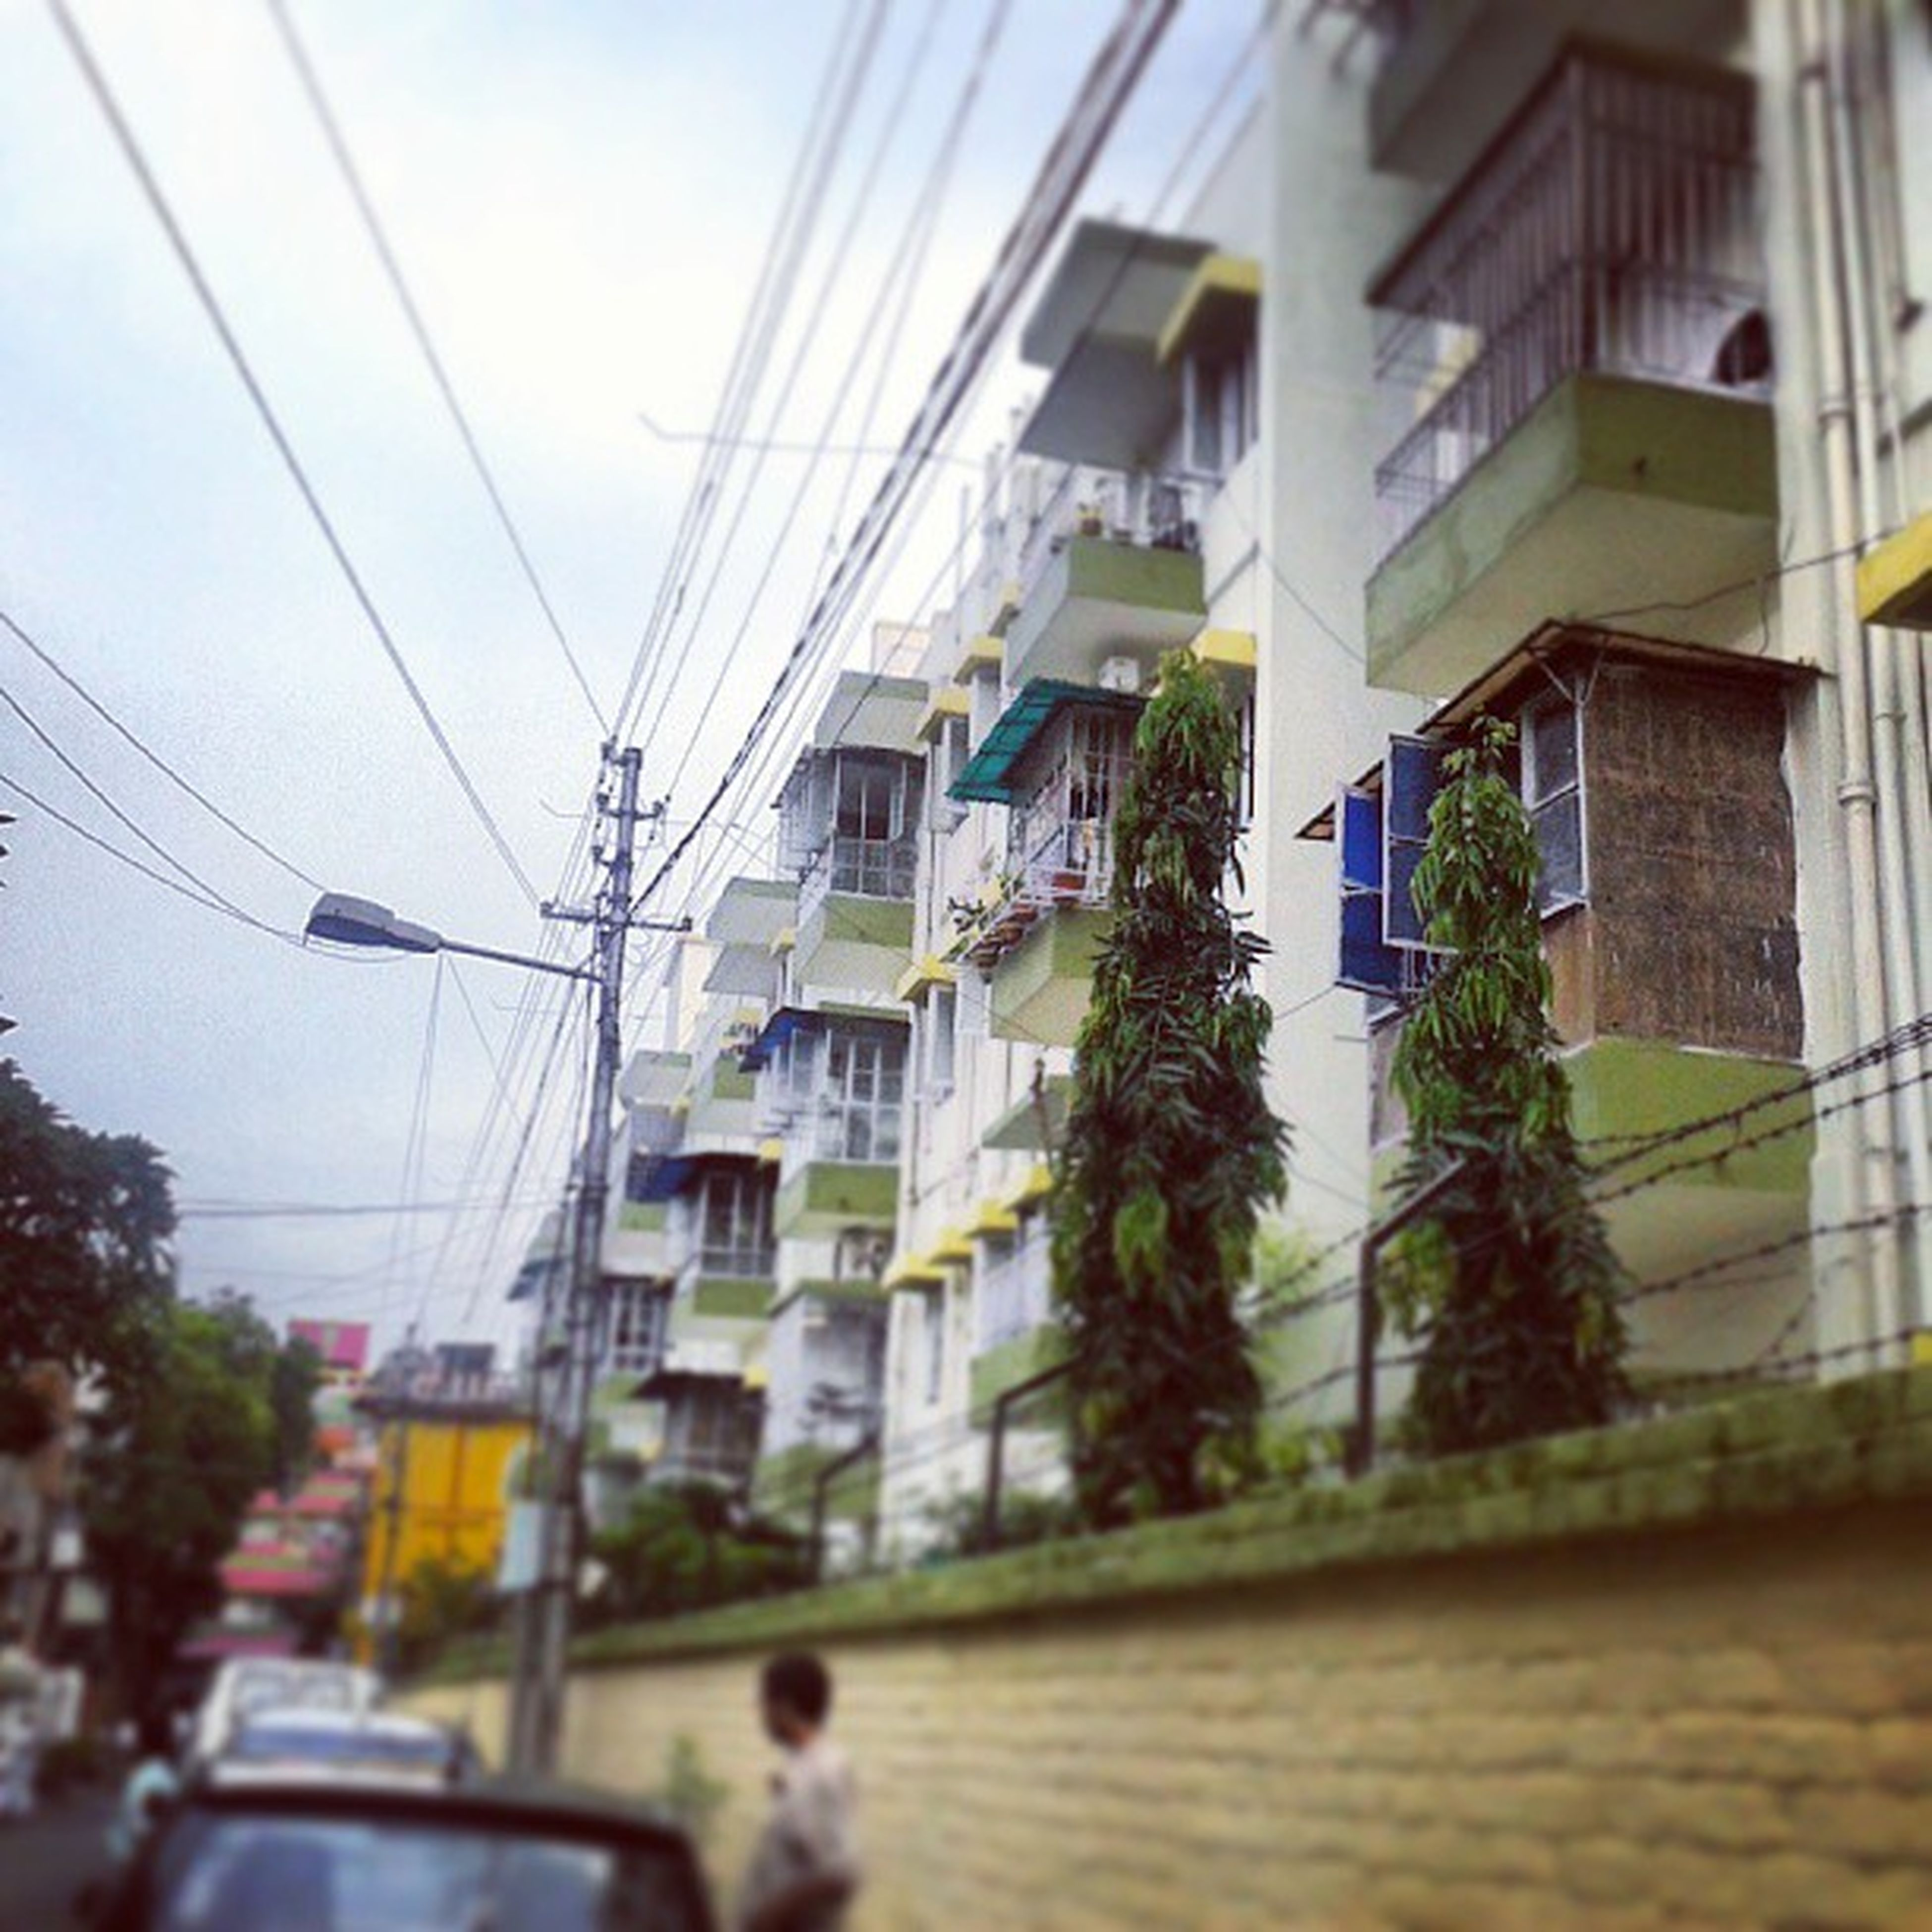 building exterior, architecture, built structure, power line, street, transportation, city, cable, residential building, road, building, residential structure, electricity pylon, day, window, tree, car, city life, outdoors, sky